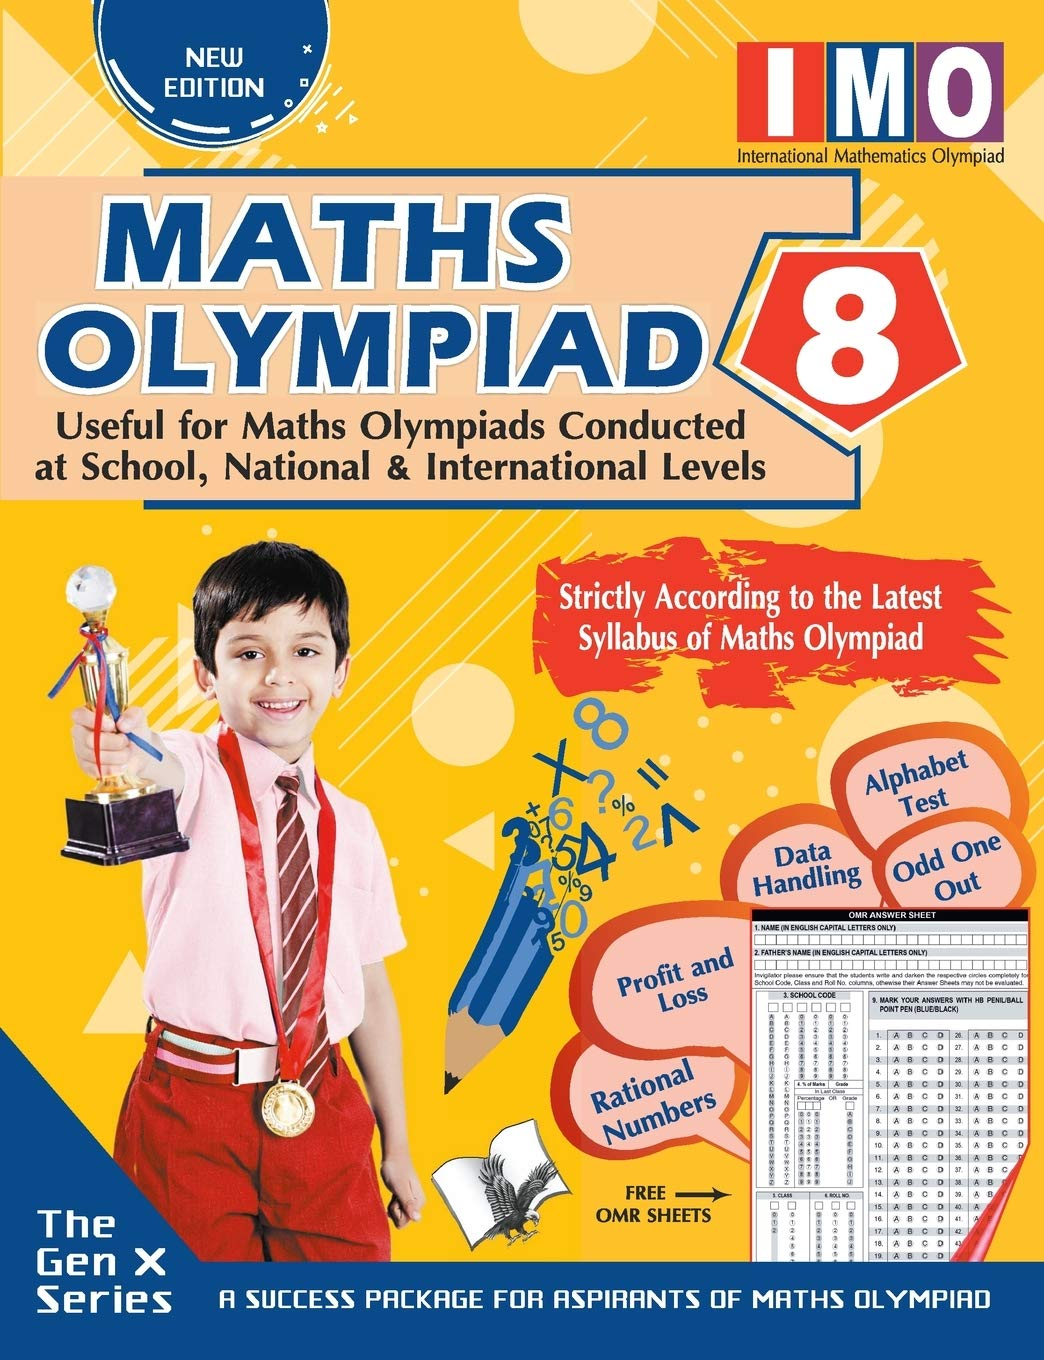 MATHS OLYMPIAD 8 (USEFUL FOR MATHS OLYMPIADS CONDUCTED AT SCHOOL, NATIONAL & INTERNATIONAL LEVELS)